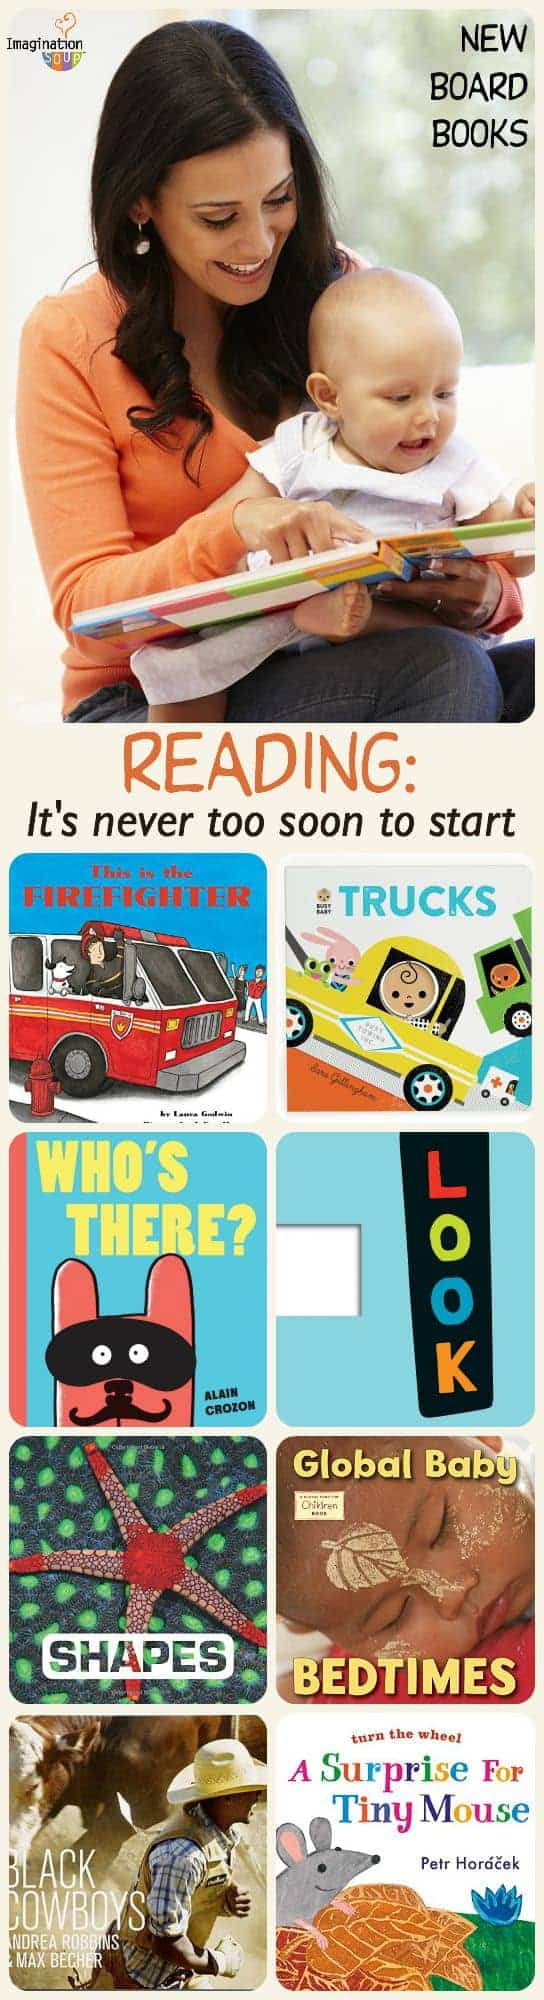 New Board Books to Read With Children